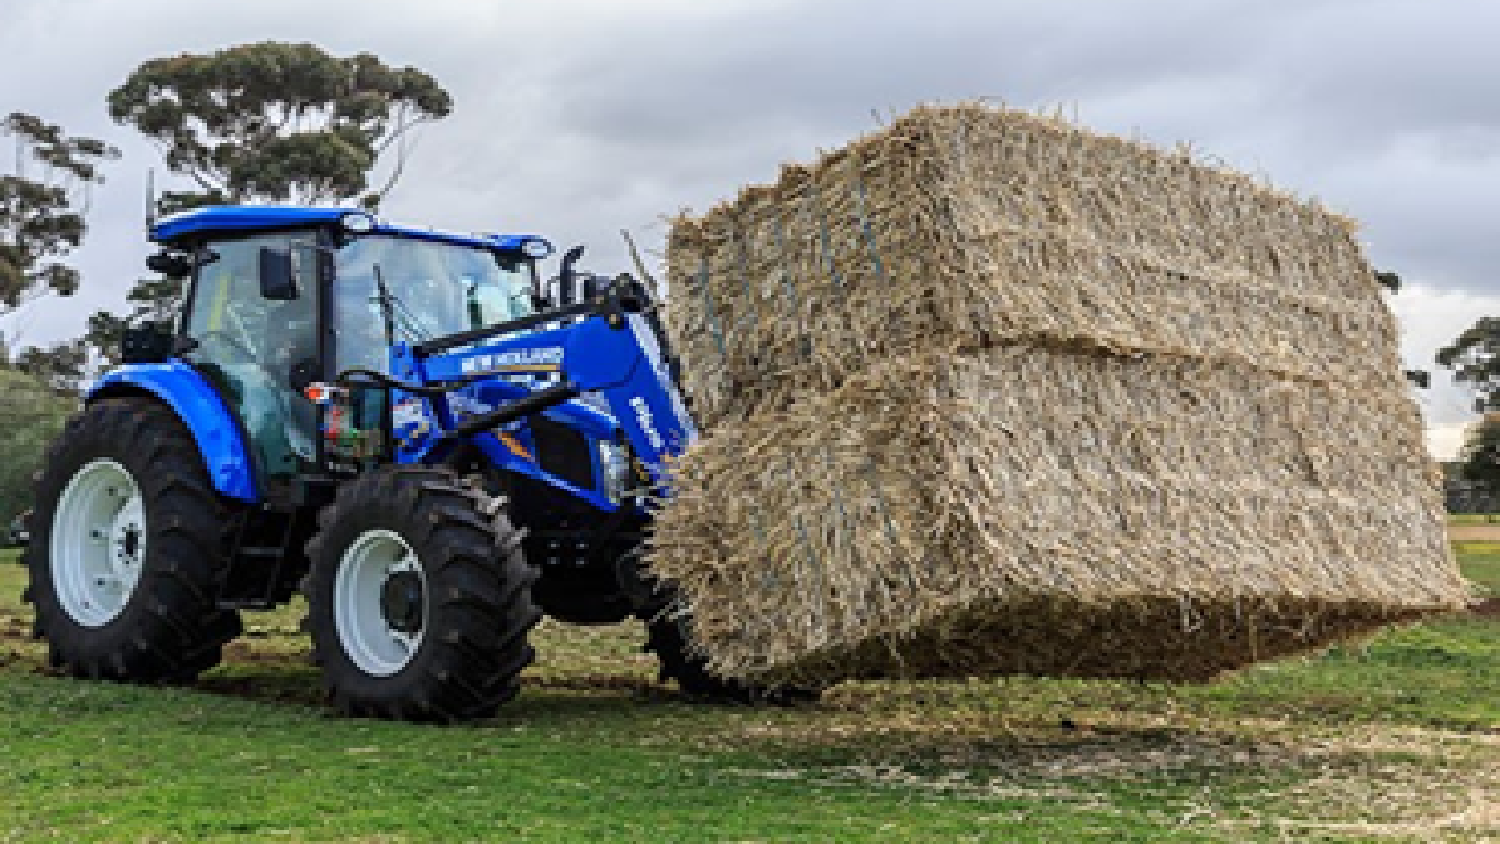 New Holland T5.90 Cab Tractor